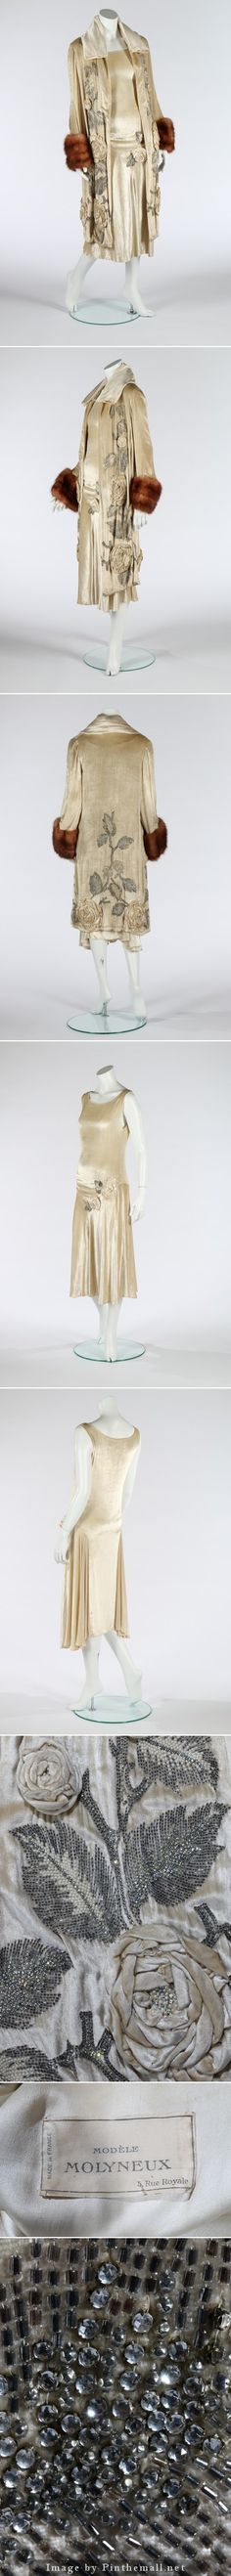 Edward Molyneux couture evening ensemble, circa 1928-29. printed silk label 'Molyneux, 3 Rue Royale', and indistinctly numbered 32553, of sumptuous ivory velvet, the dress with drapes to the dropped waistline, trimmed with large velvet roses inset with pearls and rhinestones with bugle beaded, pearl and rhinestone leaves. The matching coat also covered with lavishly embroidered and beaded roses front and back, plain satin collar, lined in ivory satin. KTA